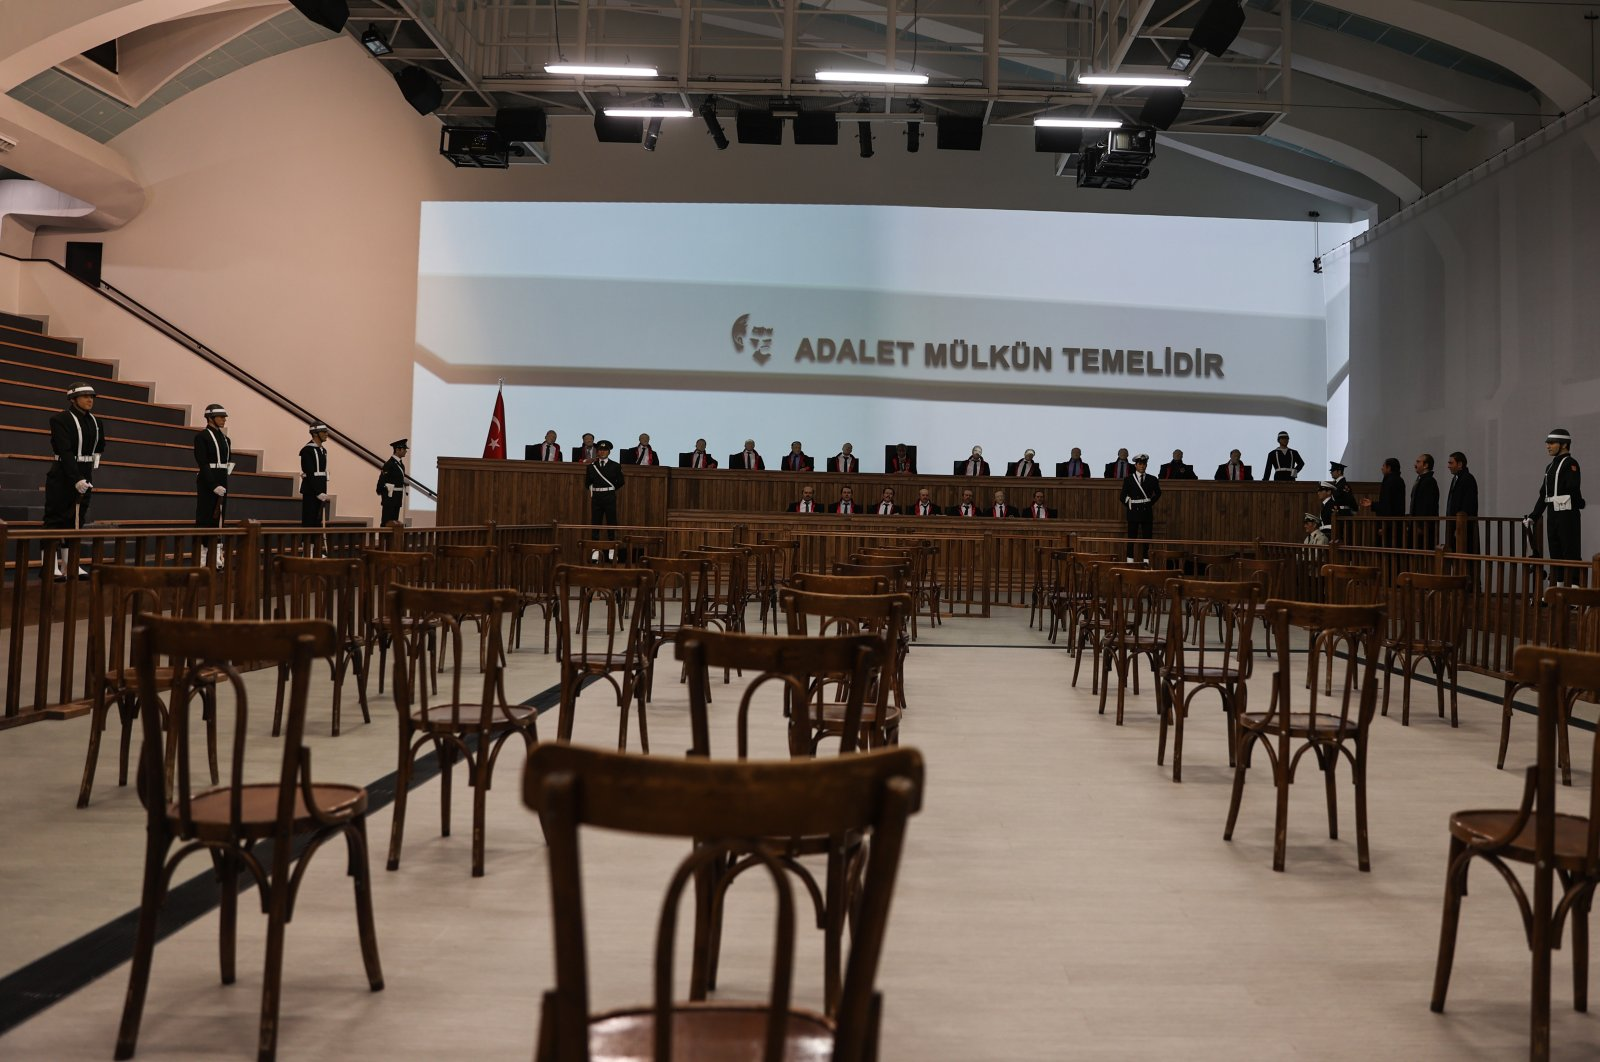 """A room at Yassıada, whose name was changed to """"Democracy and Freedom Island,"""" symbolizes one of the darkest eras in the history of the republic because of its notorious jails and trials from the 1960 military coup, Turkey, May 25, 2021. (AA Photo)"""